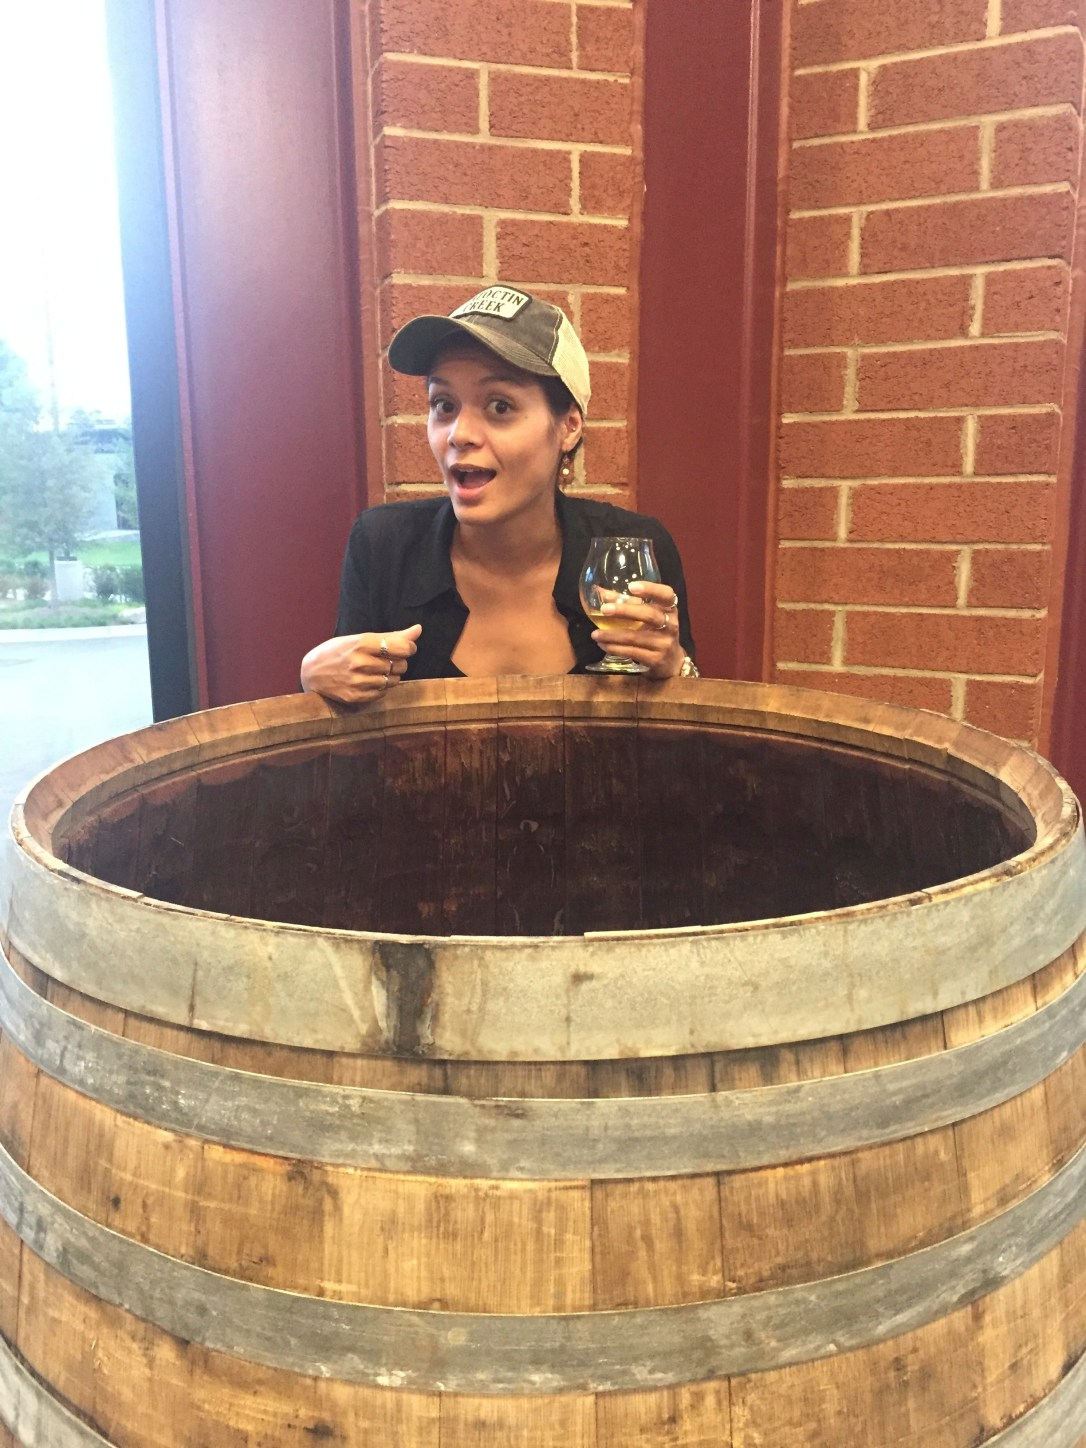 denise and barrel